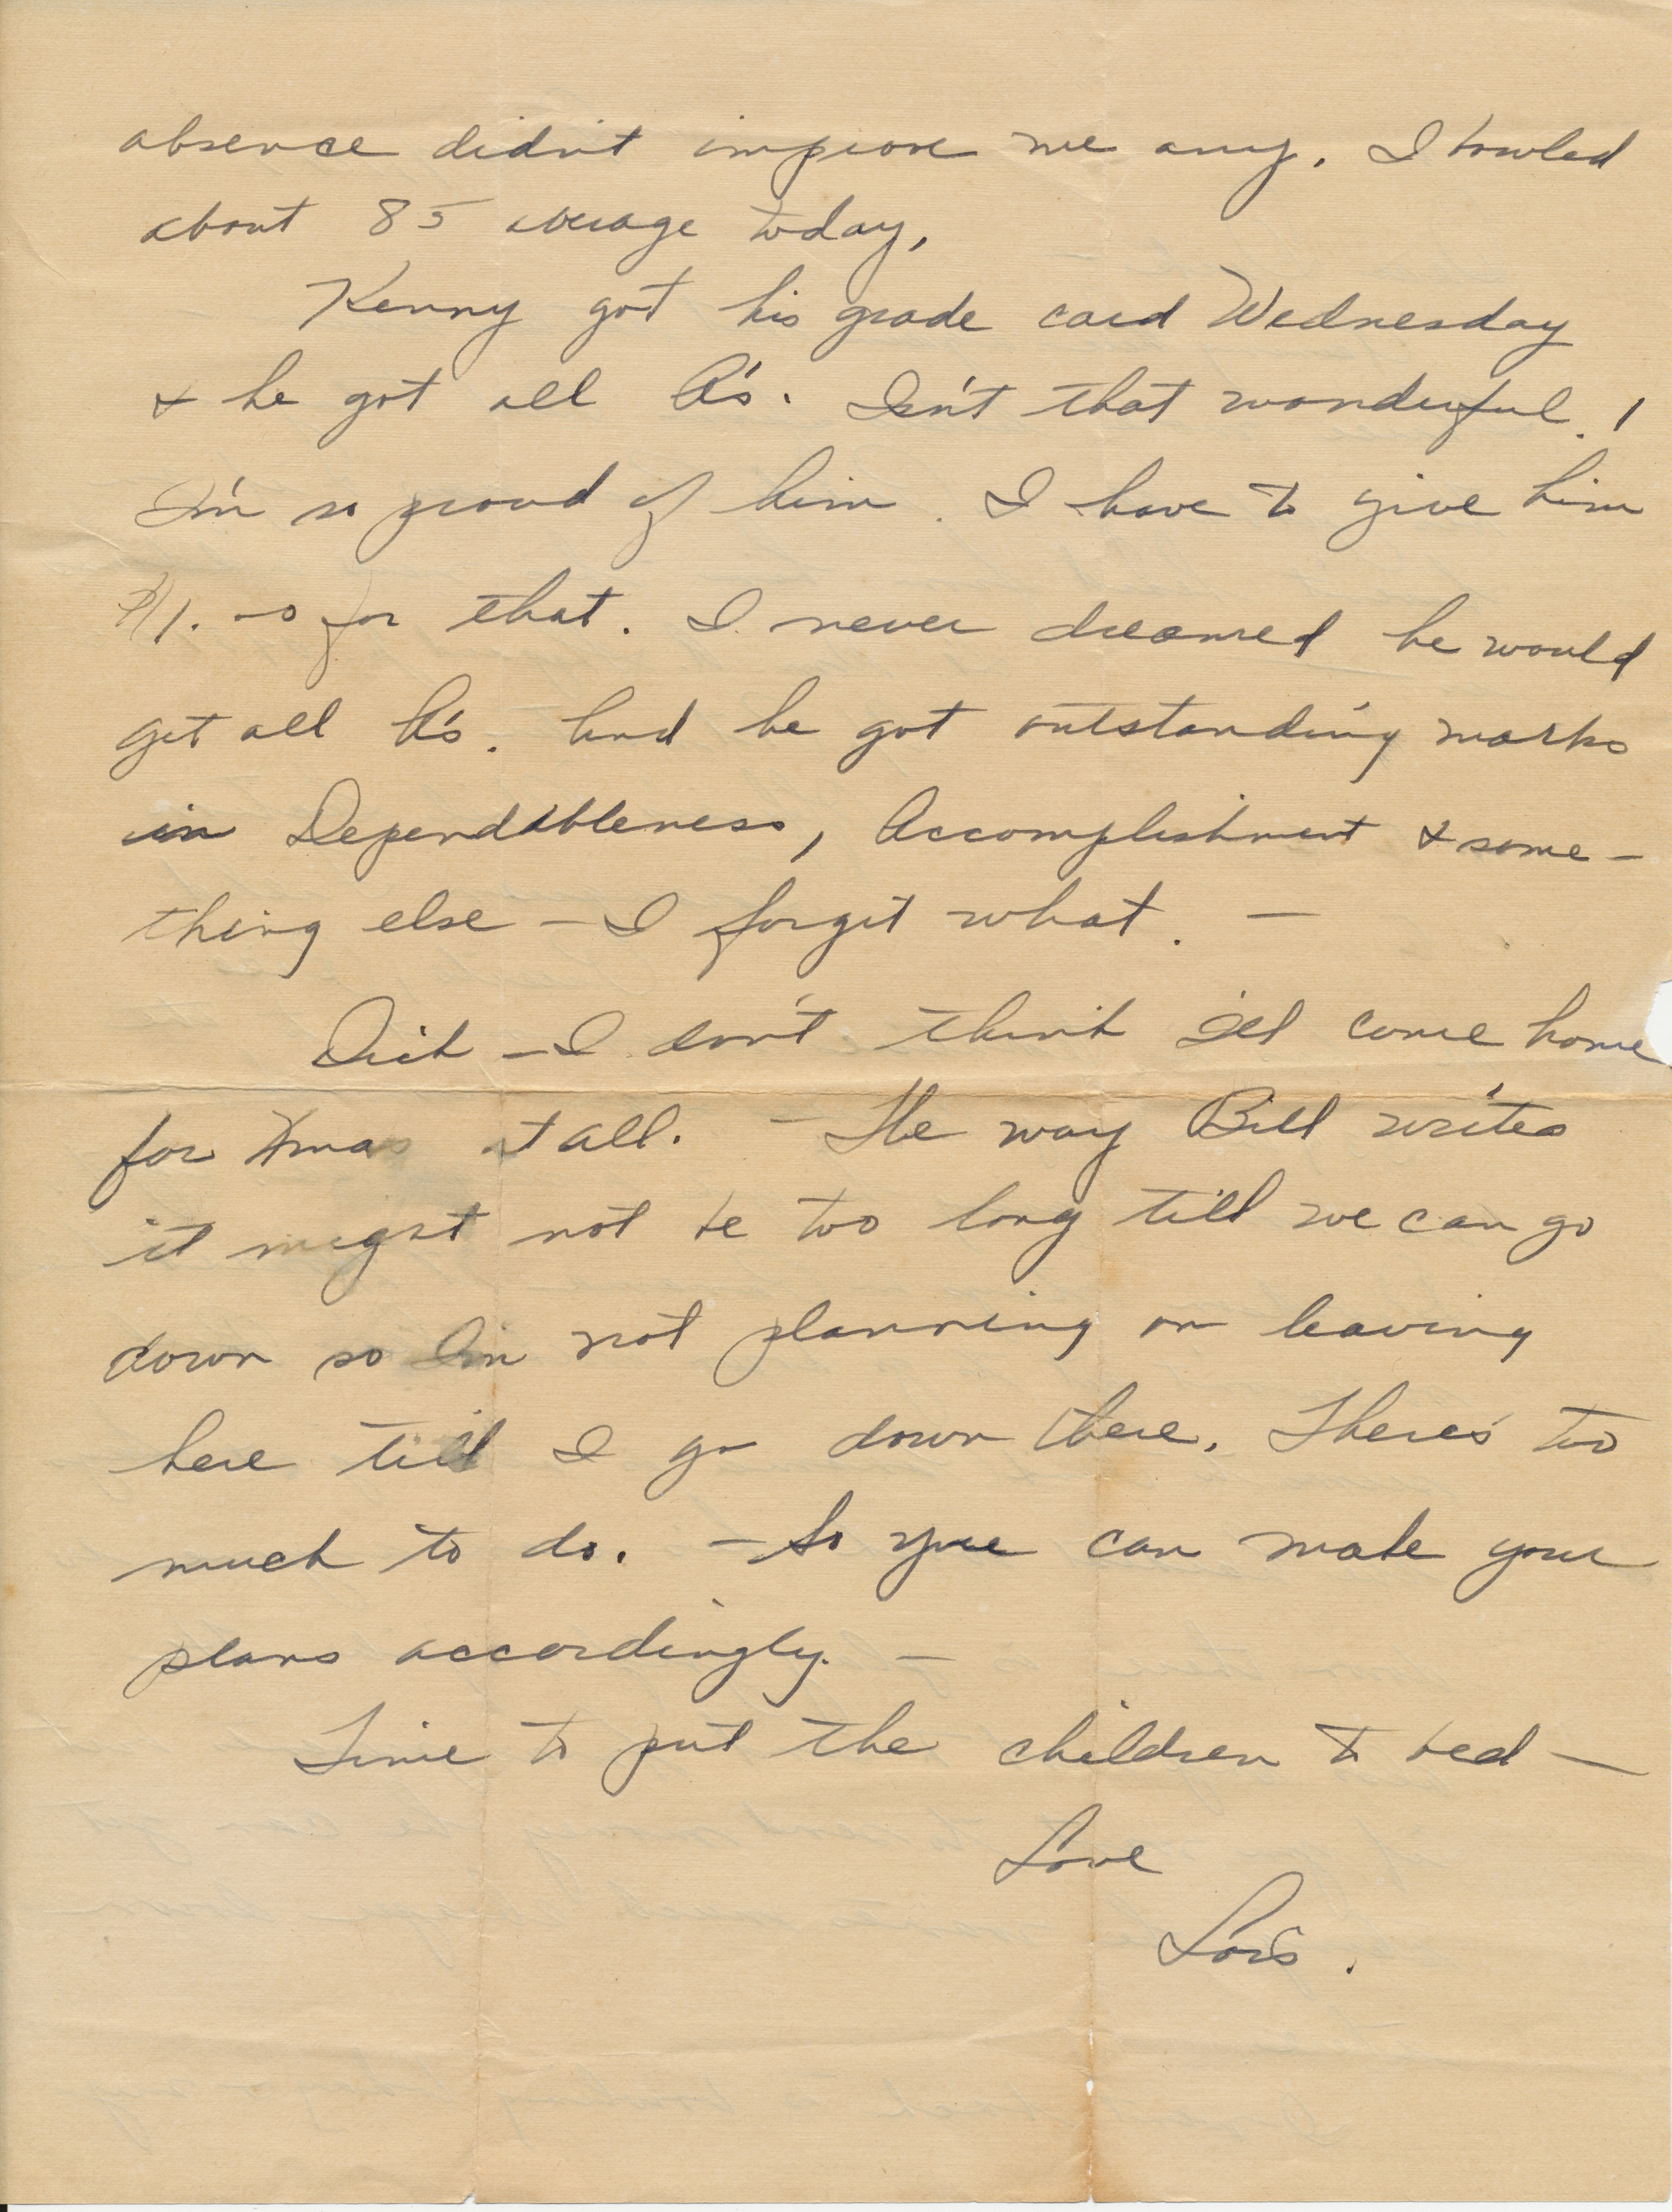 letter_shepardl_to_shepardr_1947_12_04_p02